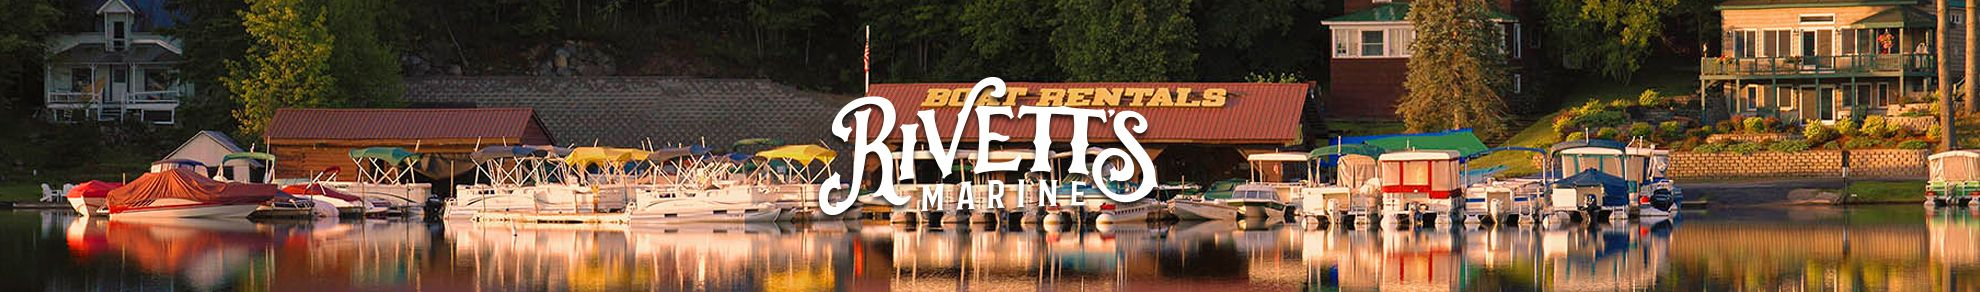 About Rivetts Marine